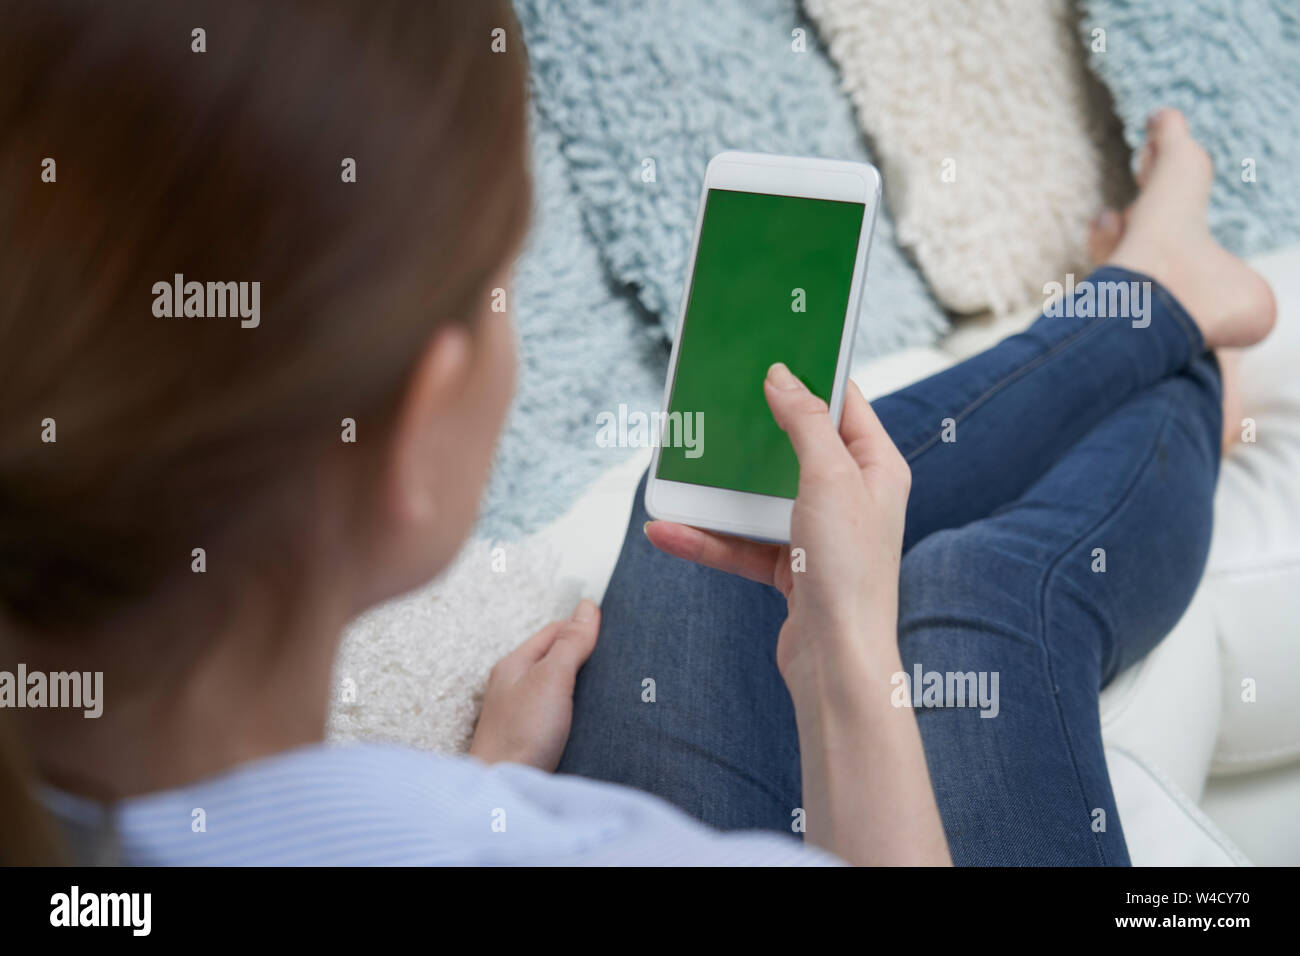 Over The Shoulder View Of Woman Lying On Sofa Using Green Screen Mobile Phone At Home Stock Photo